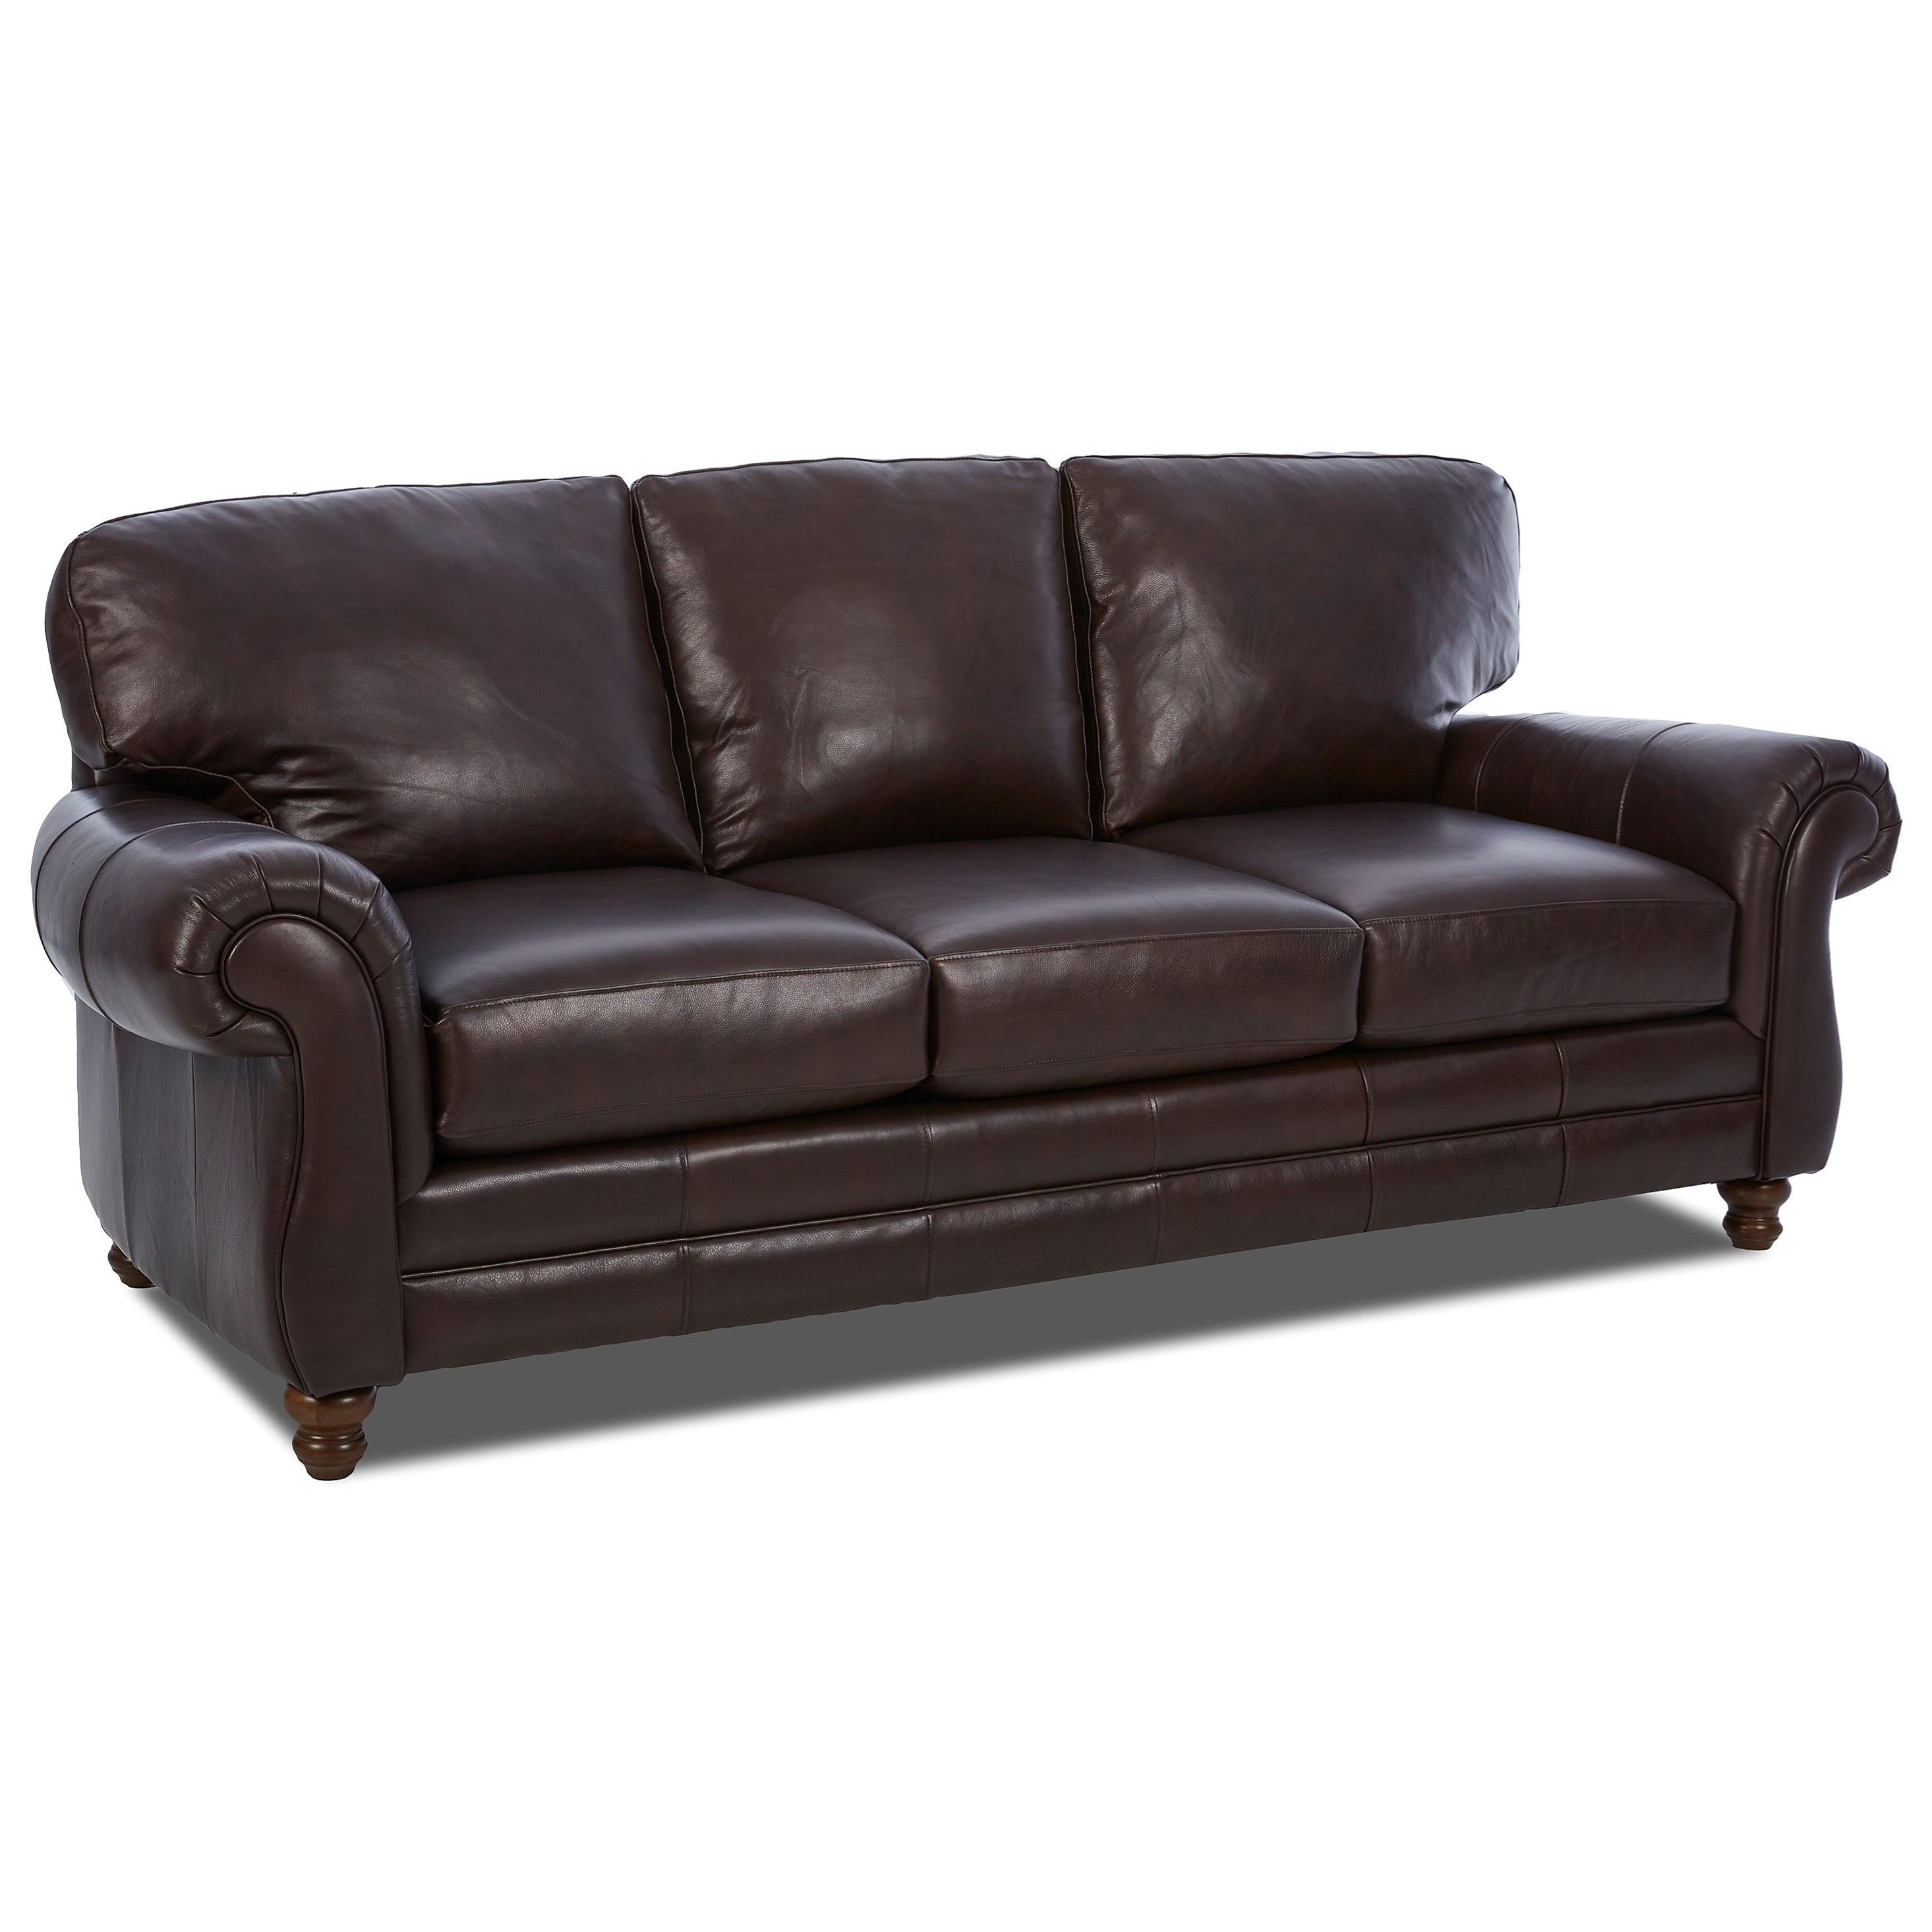 Klaussner Leather Sofa Review: Klaussner Valiant Leather Sofa With Rolled Arms